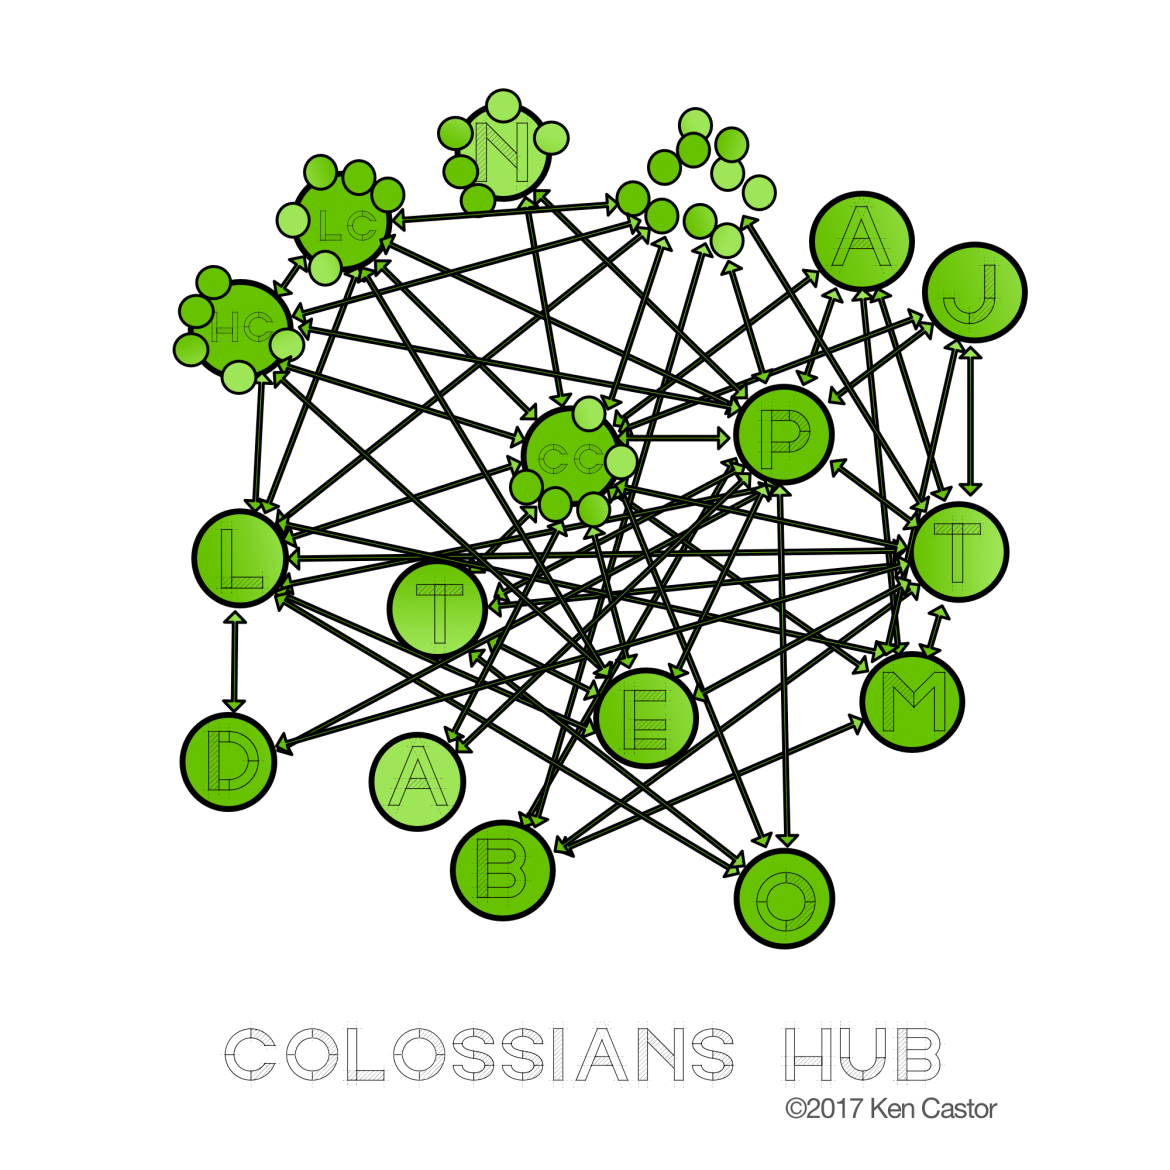 hub-network-colossians-png